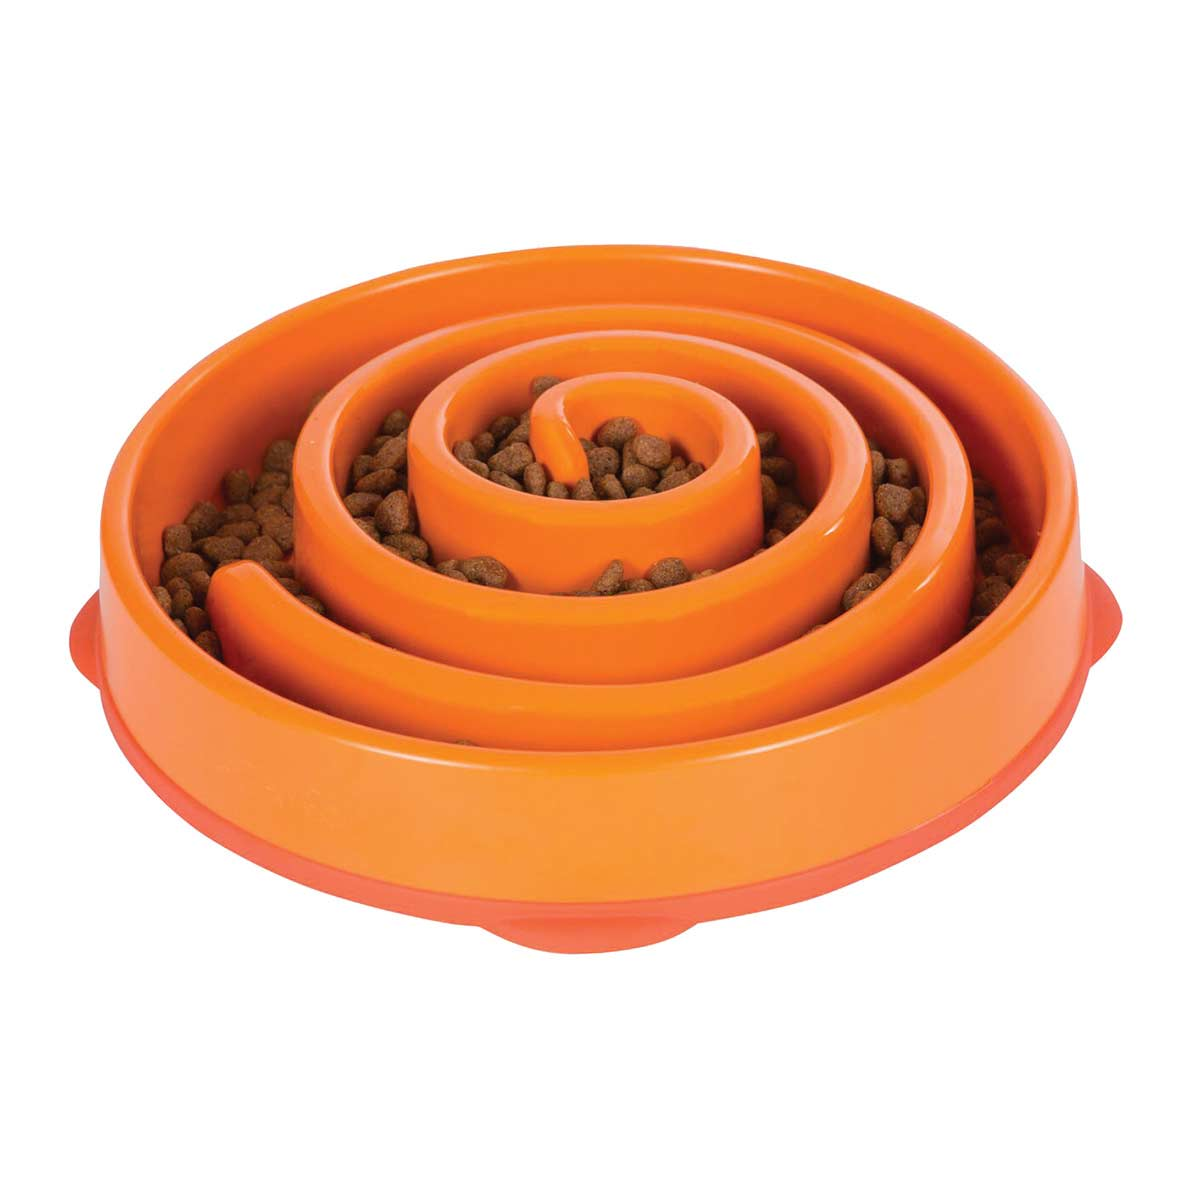 Outward Hound Slo-Bowl Coral Mini 9 inch